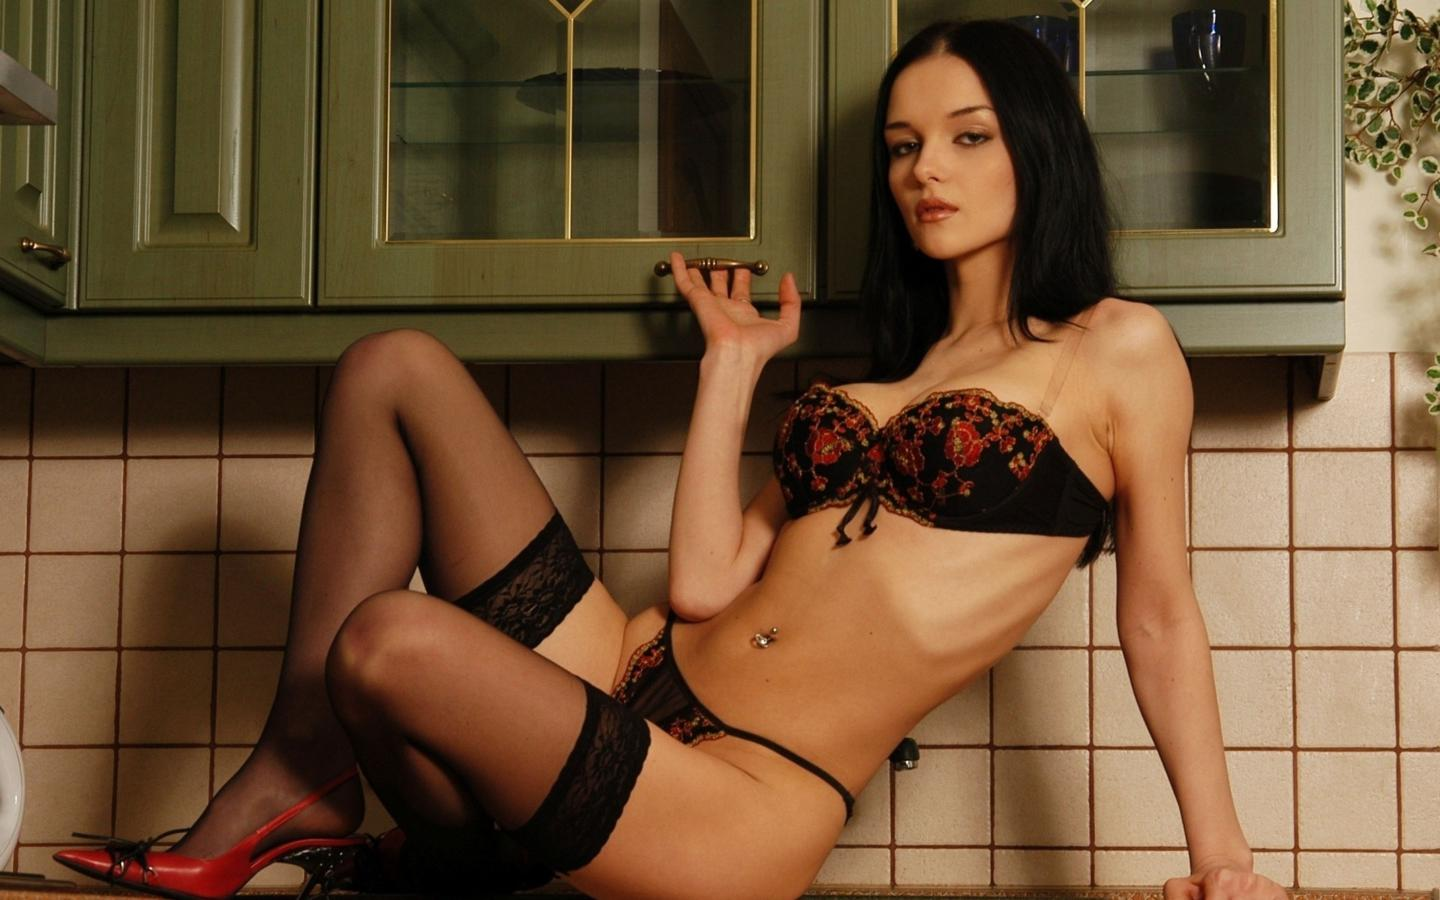 brunette, kitchen, lingerie, stockings, katie fey, eugenia diordiychuk, jenya d, heels, yevgeniya diordiychuk, playboy, playmate of the year, high heels, sexy, non nude